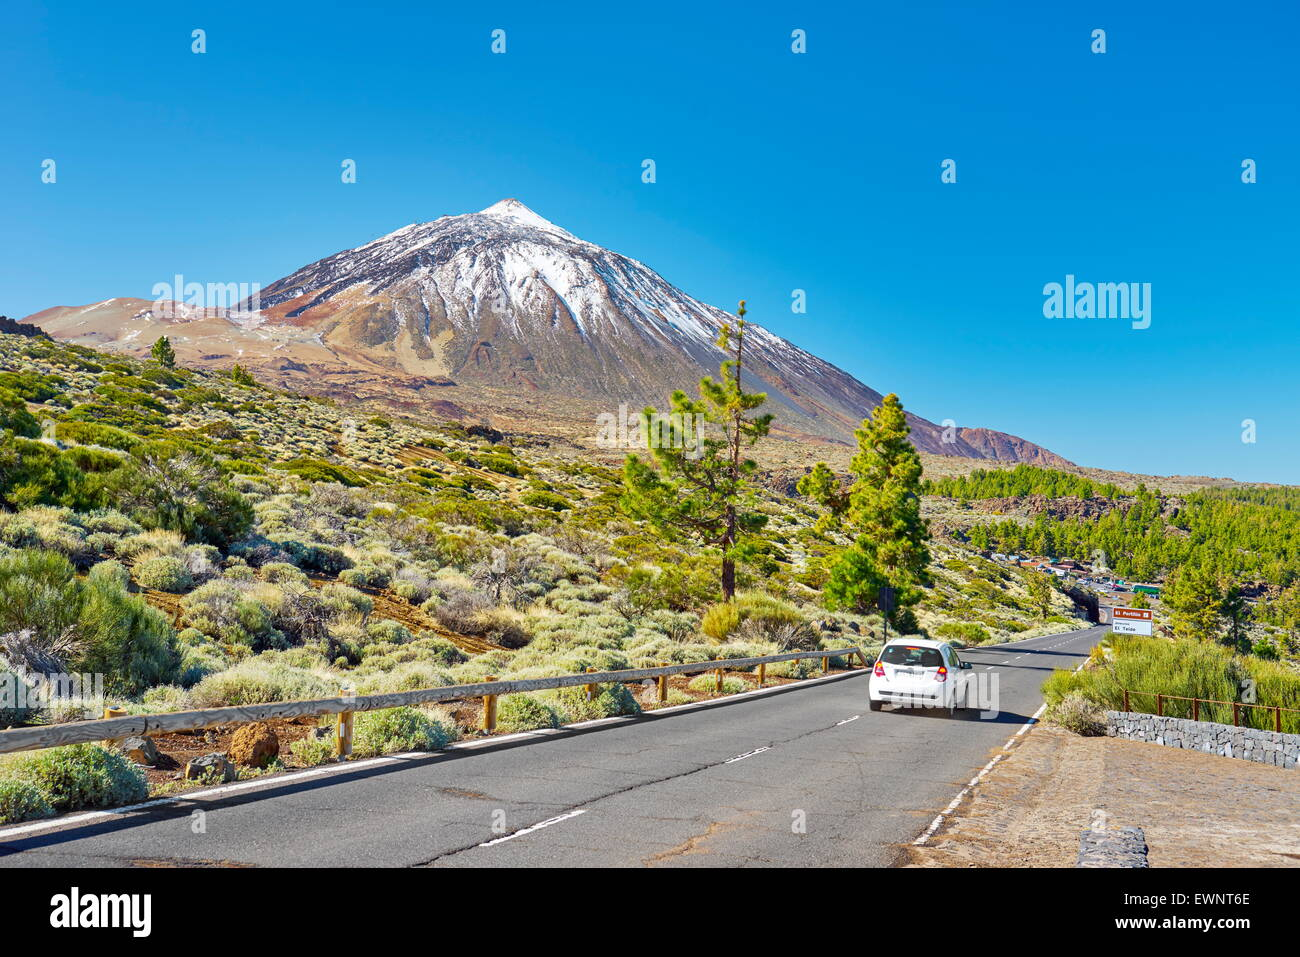 Tenerife - the Road TF-24, Teide National Park, Canary Islands, Spain - Stock Image